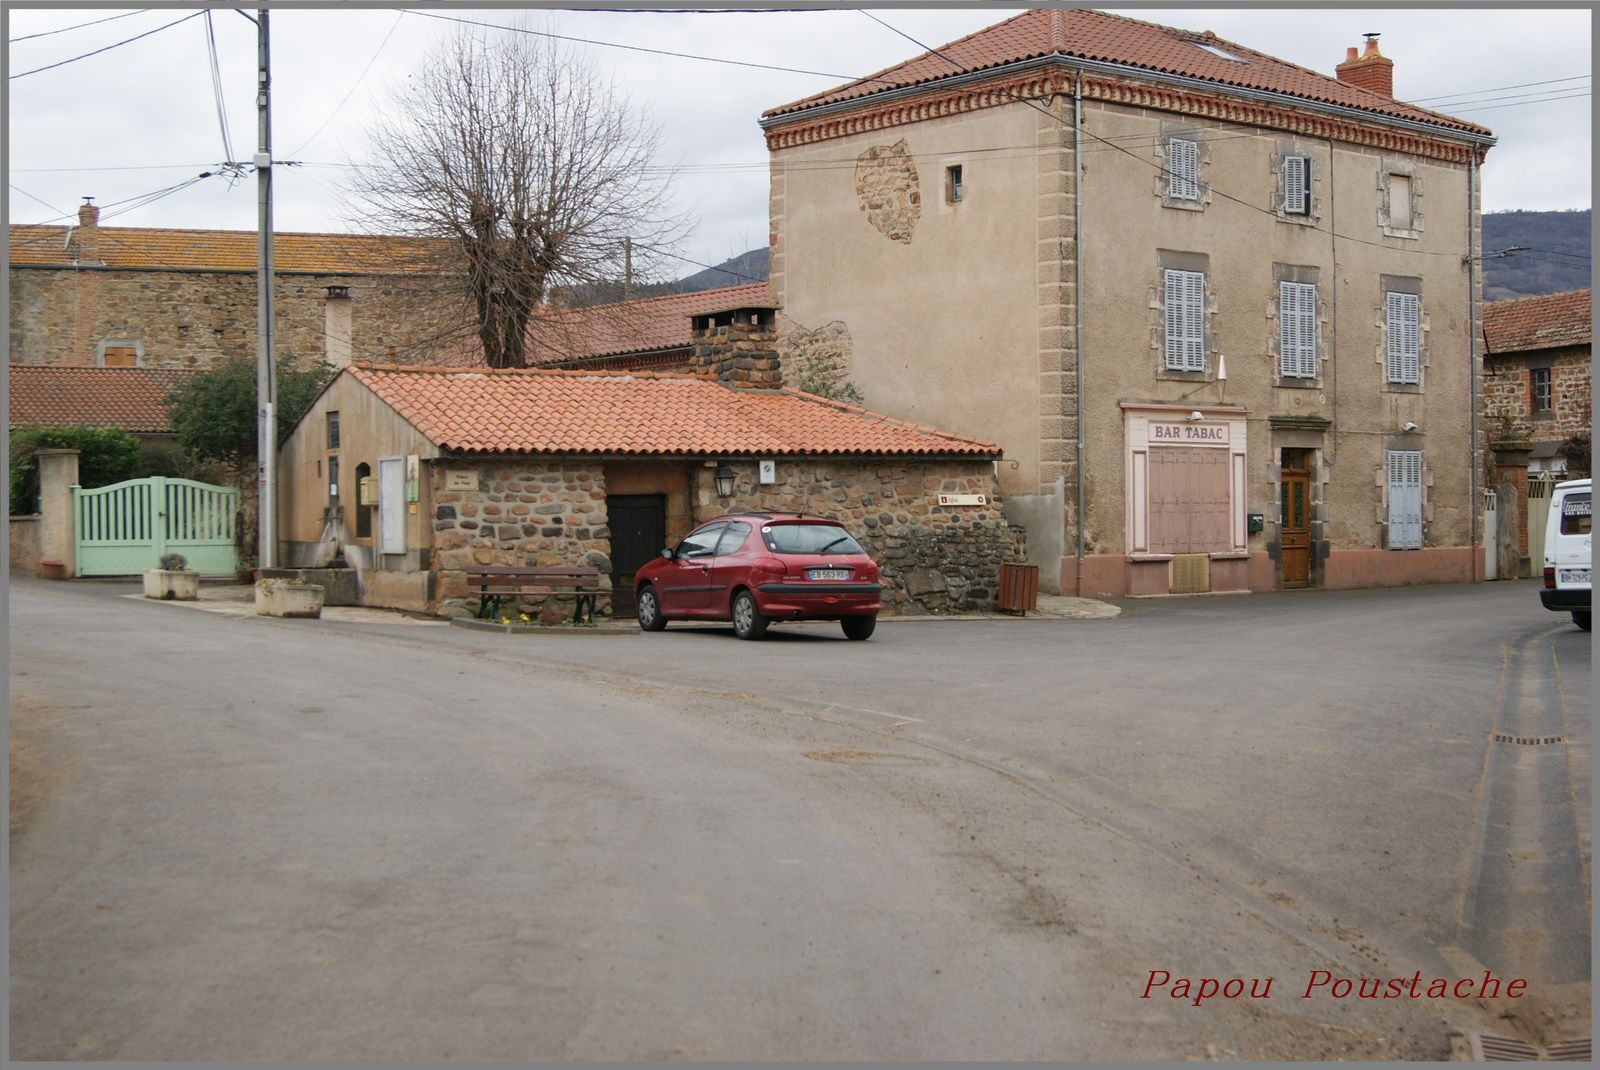 Les villages du Puy de Dome: Madriat